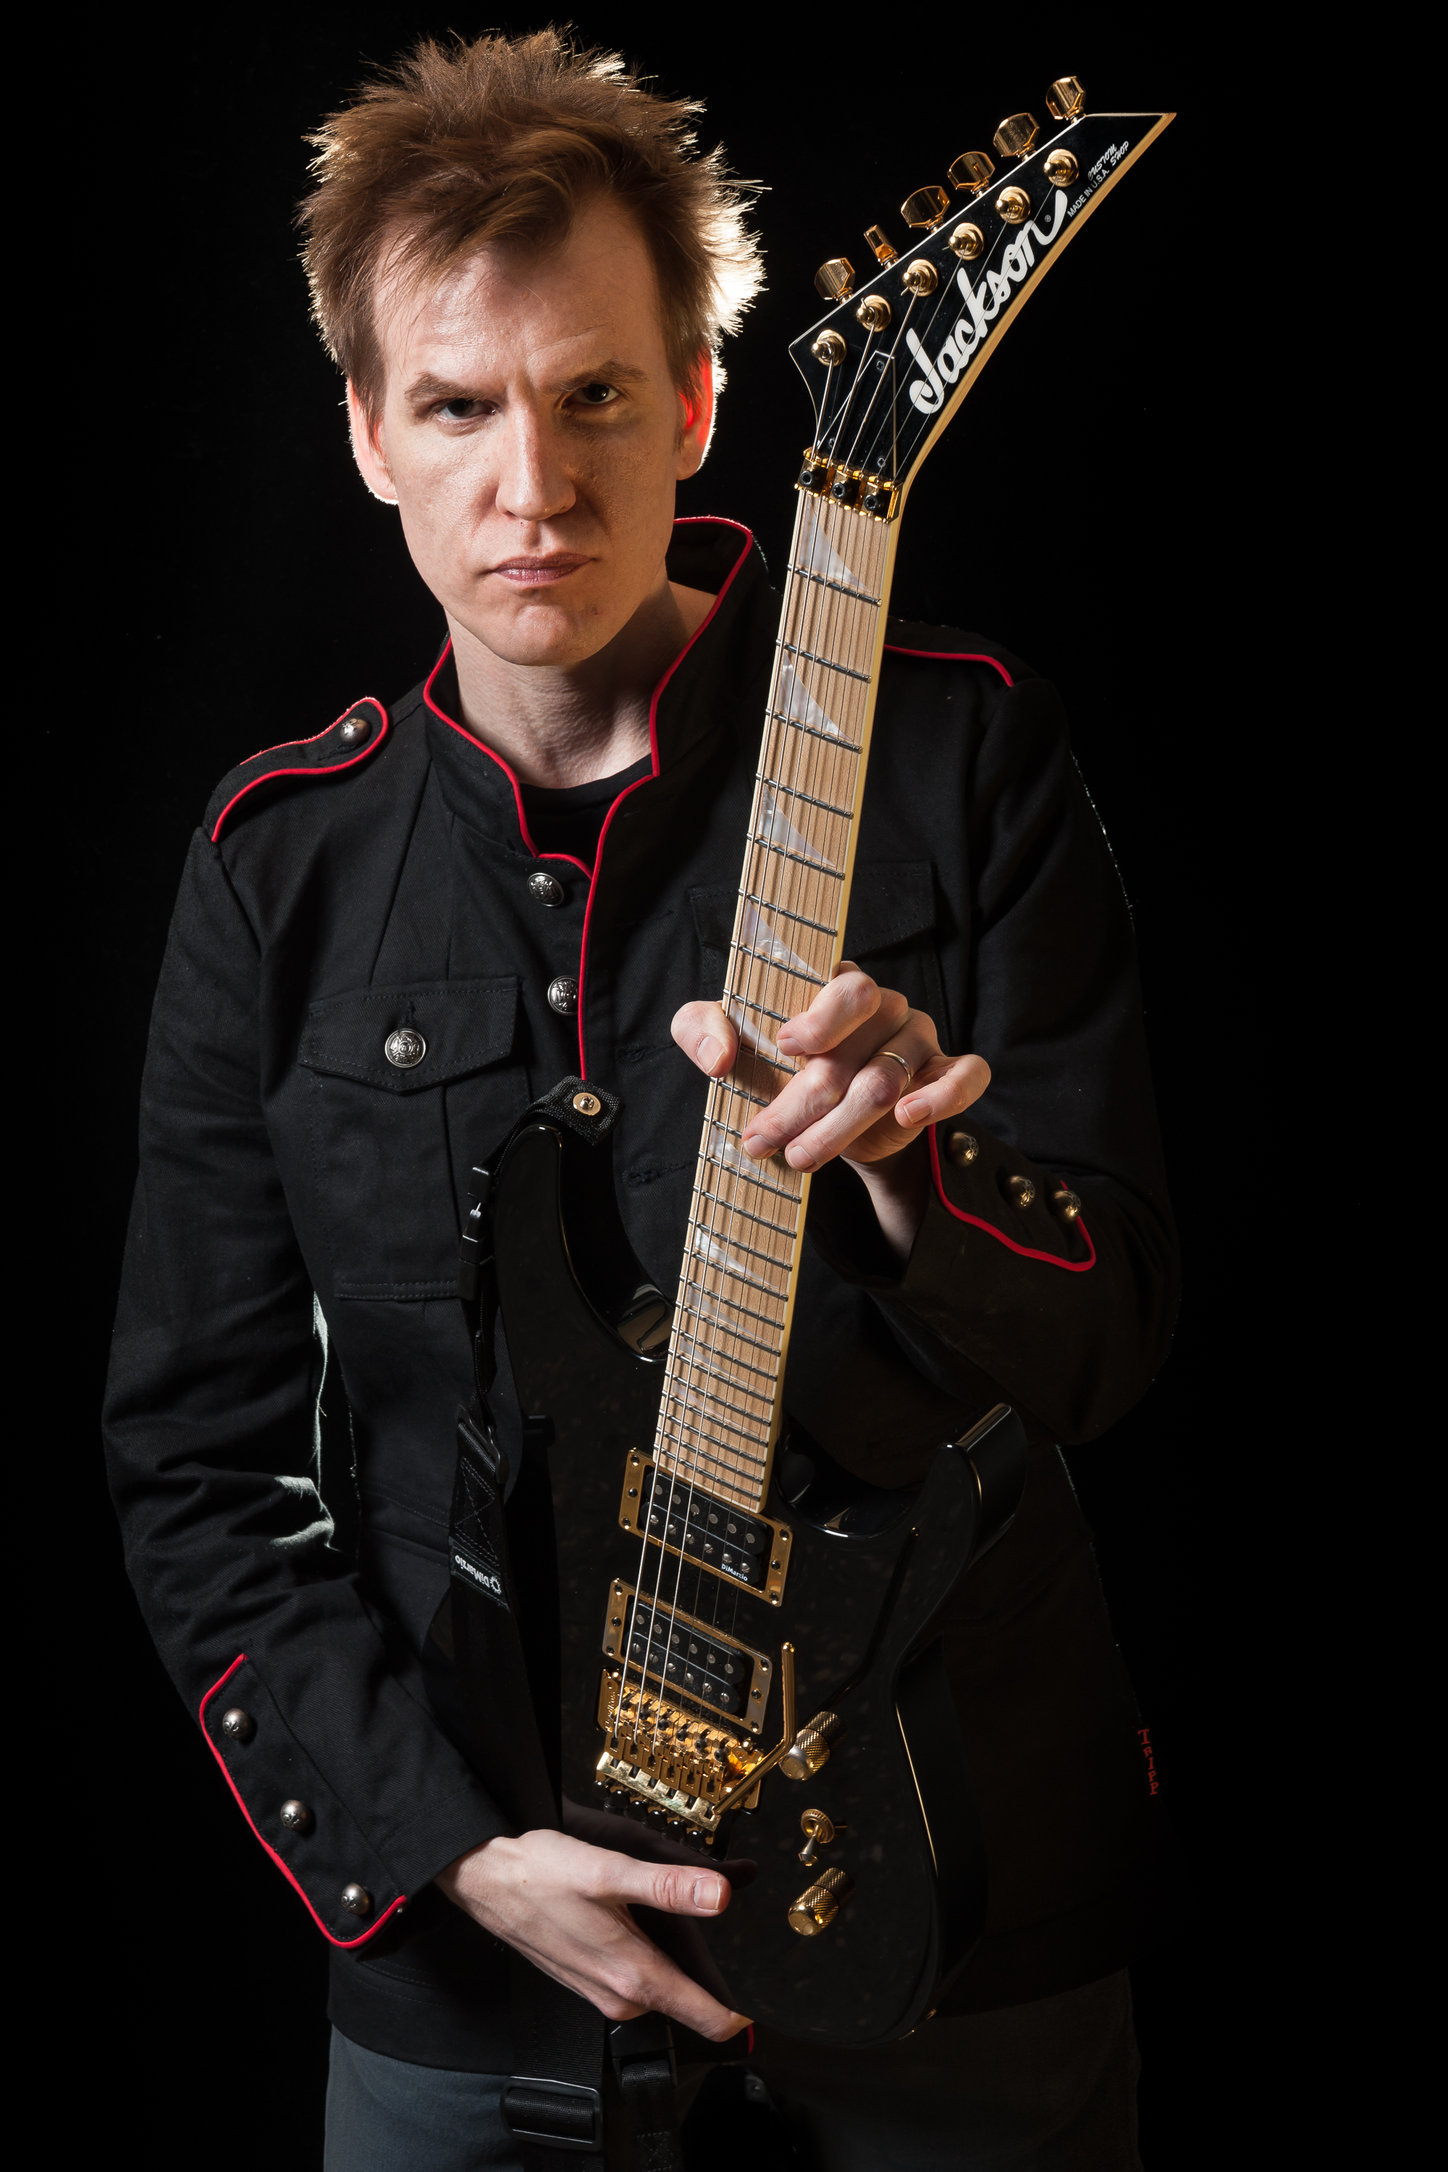 Chris Amott